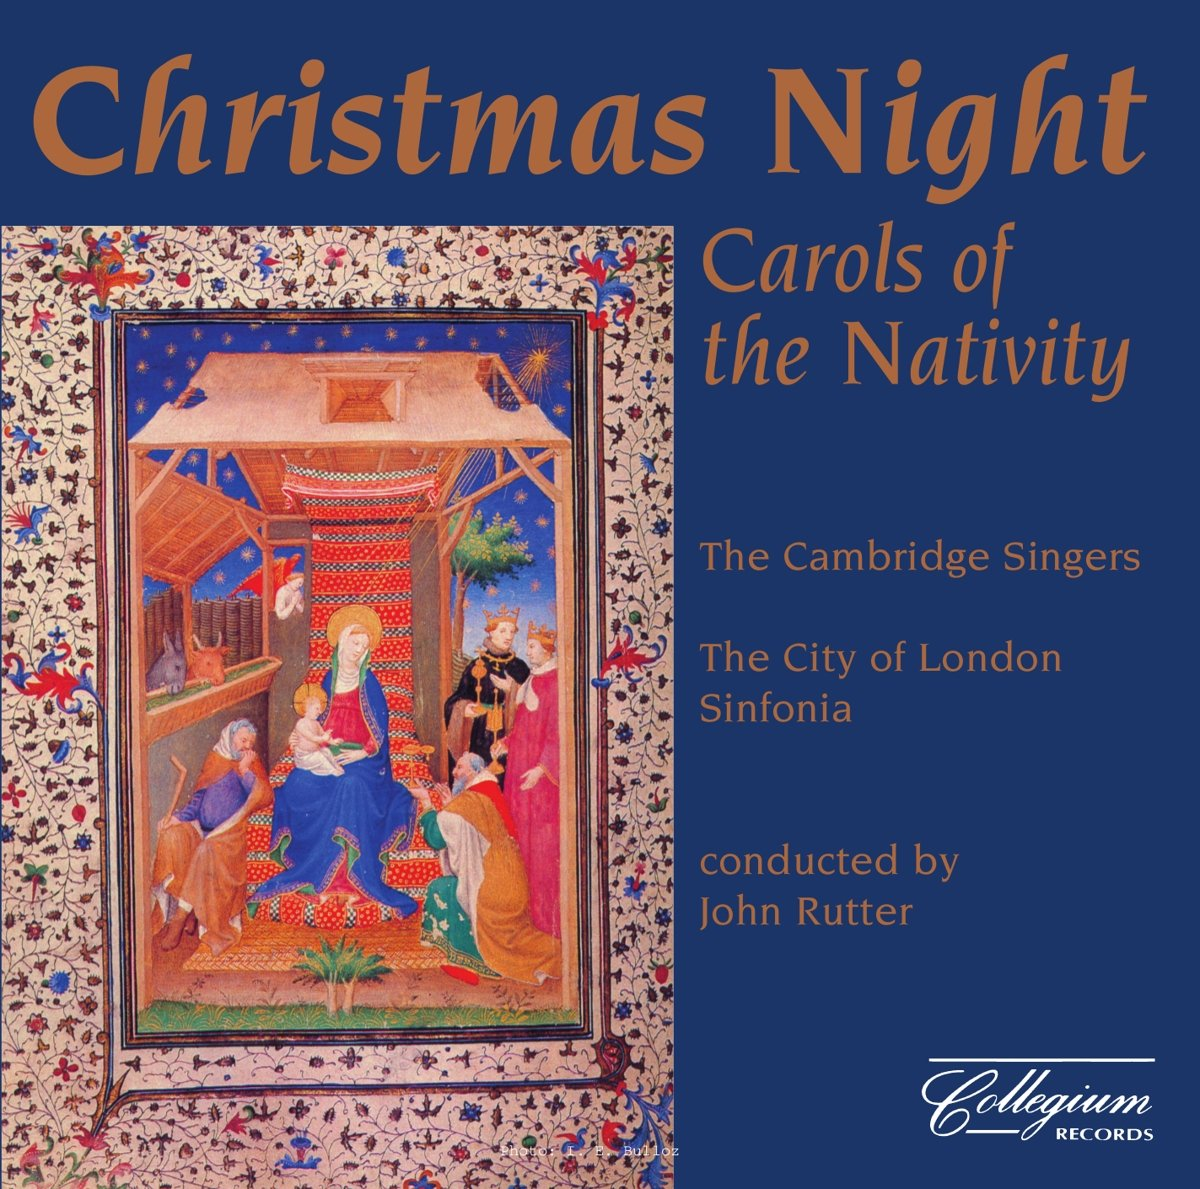 Christmas Night: Carols of the Nativity by COLLEGIUM